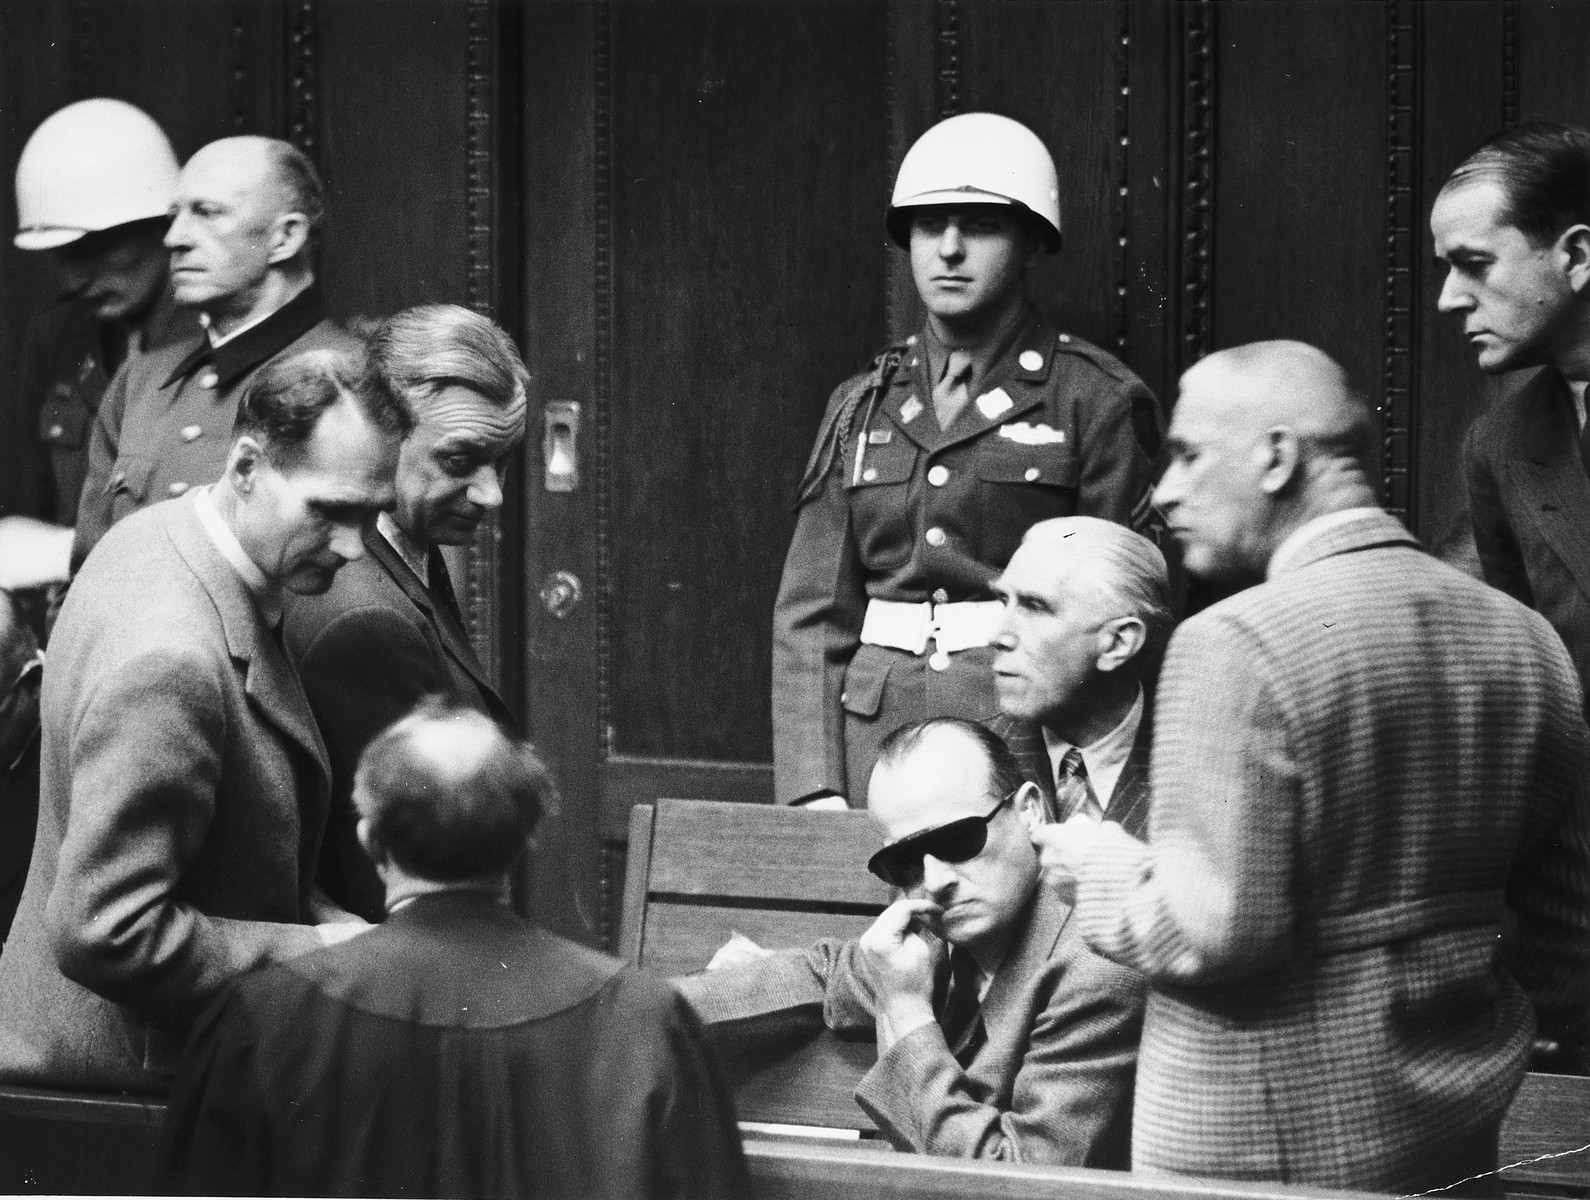 Defendants talk to each other and to their lawyer during a break at the International Military Tribunal in Nuremberg.   Among those pictured from left to right are Rudolf Hess, Arthur Seyss-Inquart, Hans Frank, Franz von Pappen, Wilhelm Frick and Albert Speer.  General Alfred Jodl is standing in back on the far left. Also pictured standing in the back, center is the donor, the American military policeman, Albert Rose.